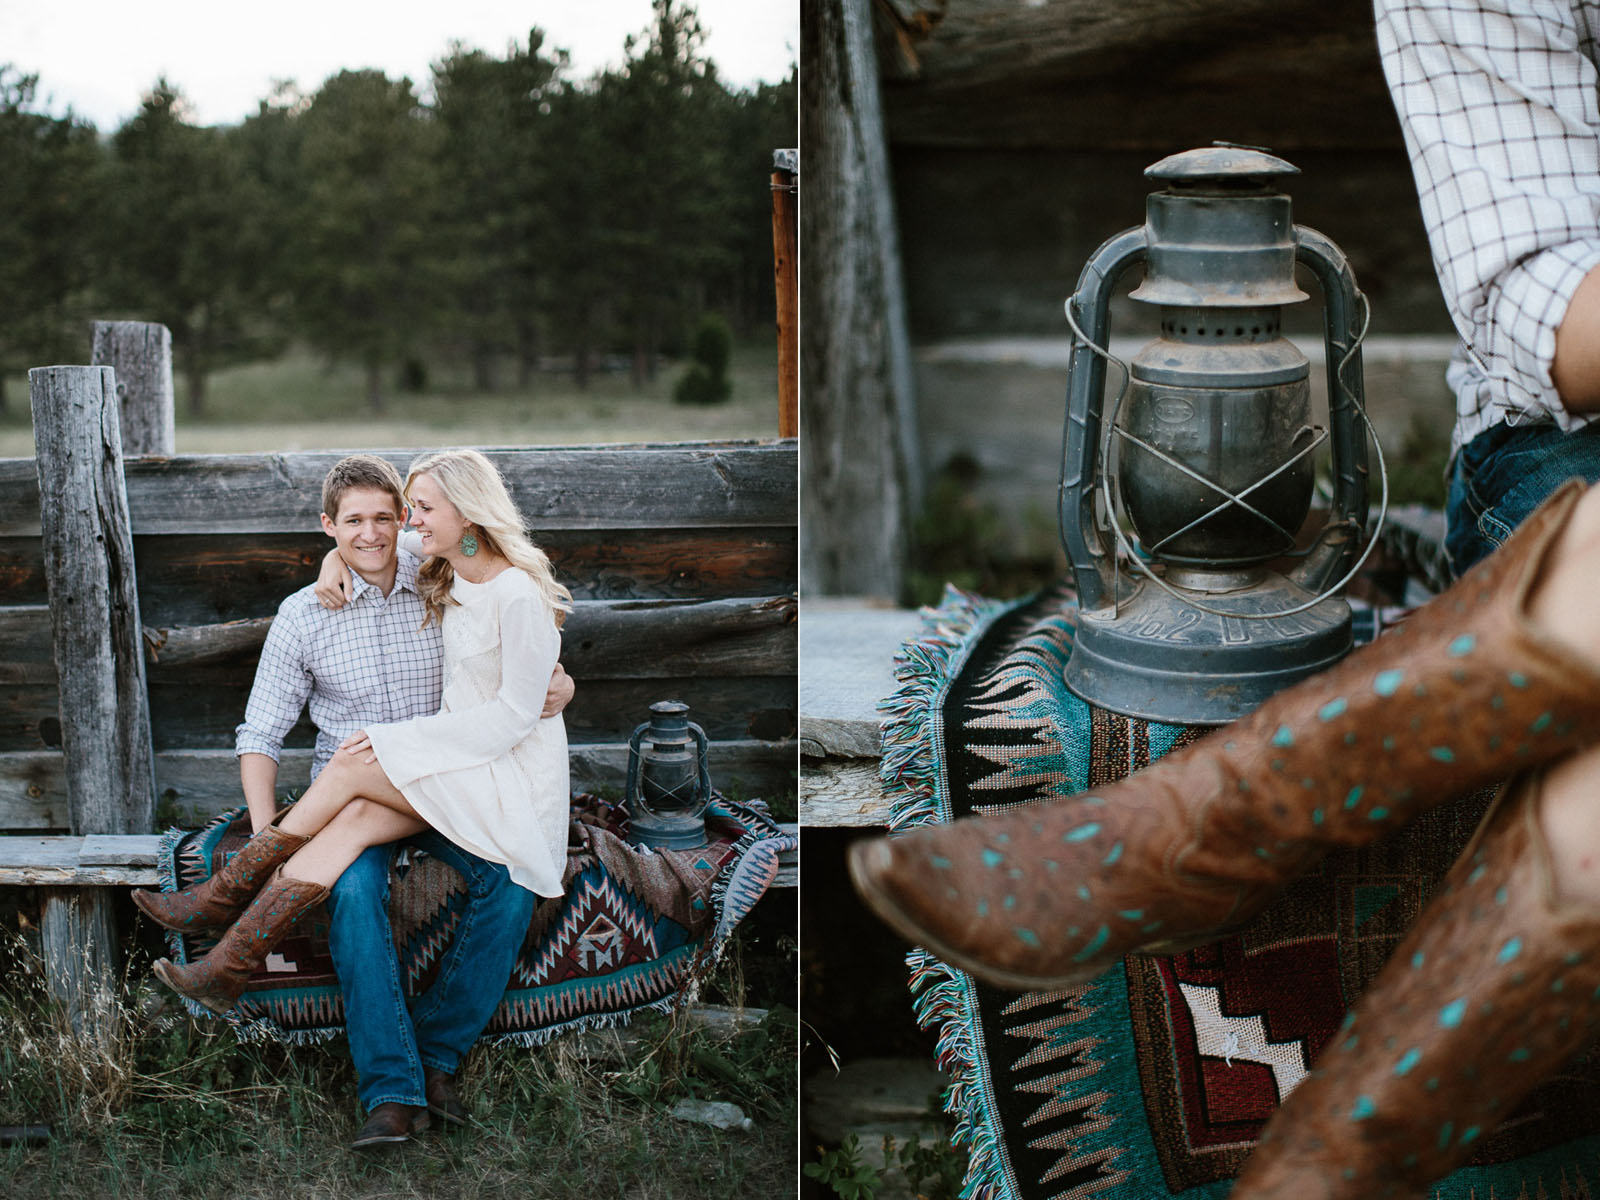 SiouxFalls_BlackHills_Adventure_Engagement_Wedding_Photographer_34.jpg